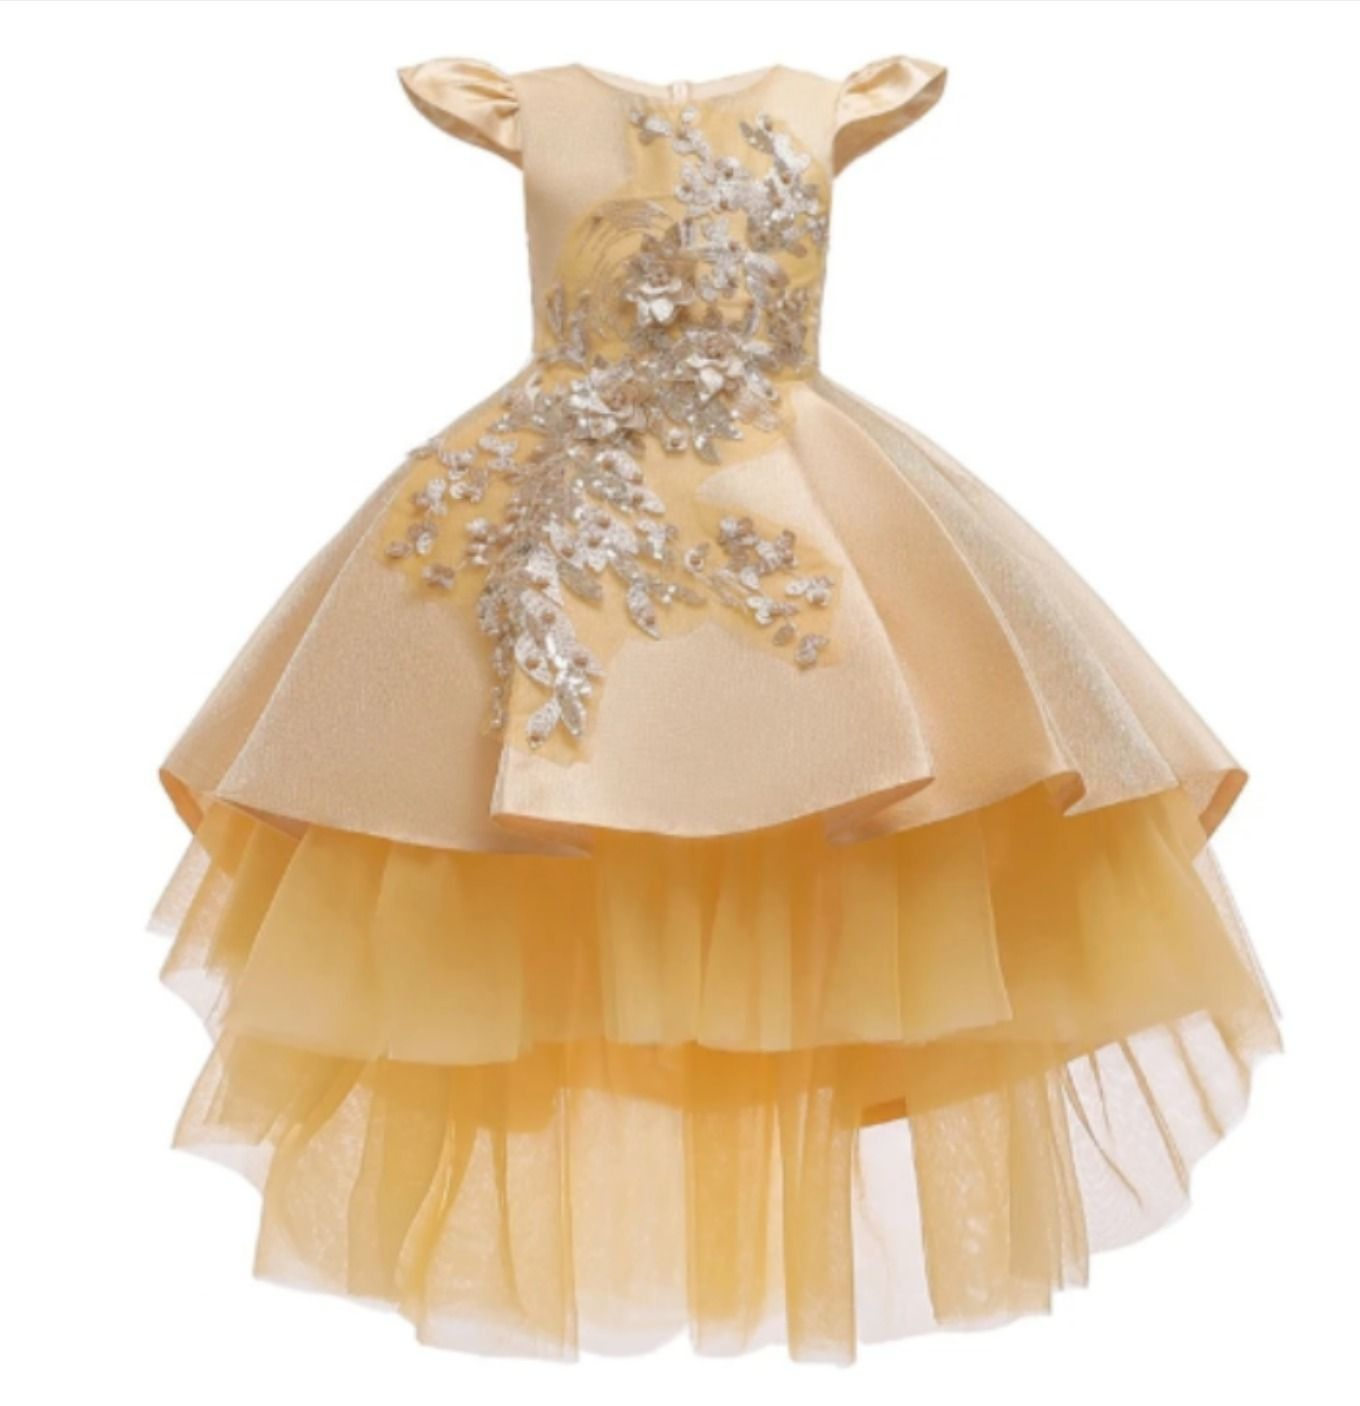 Girl/'s Fluffy Dress Princess Sleeveless Dress Lace Embroidered Party Dress Gifts